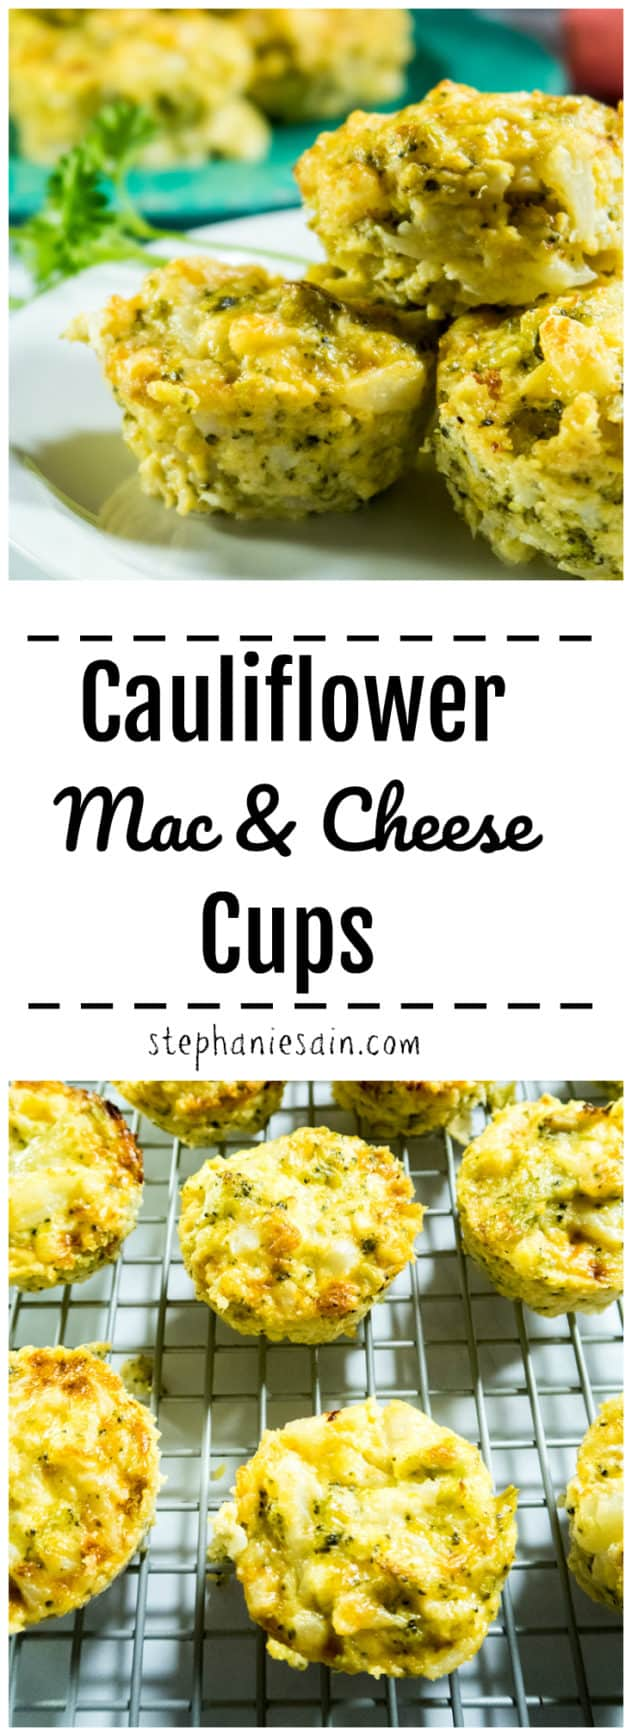 Cauliflower Mac & Cheese Cups are tasty, little portable cups loaded with veggies & cheese. Great as a side or healthy snack. Kid friendly, Low carb, Gluten free & Vegetarian.